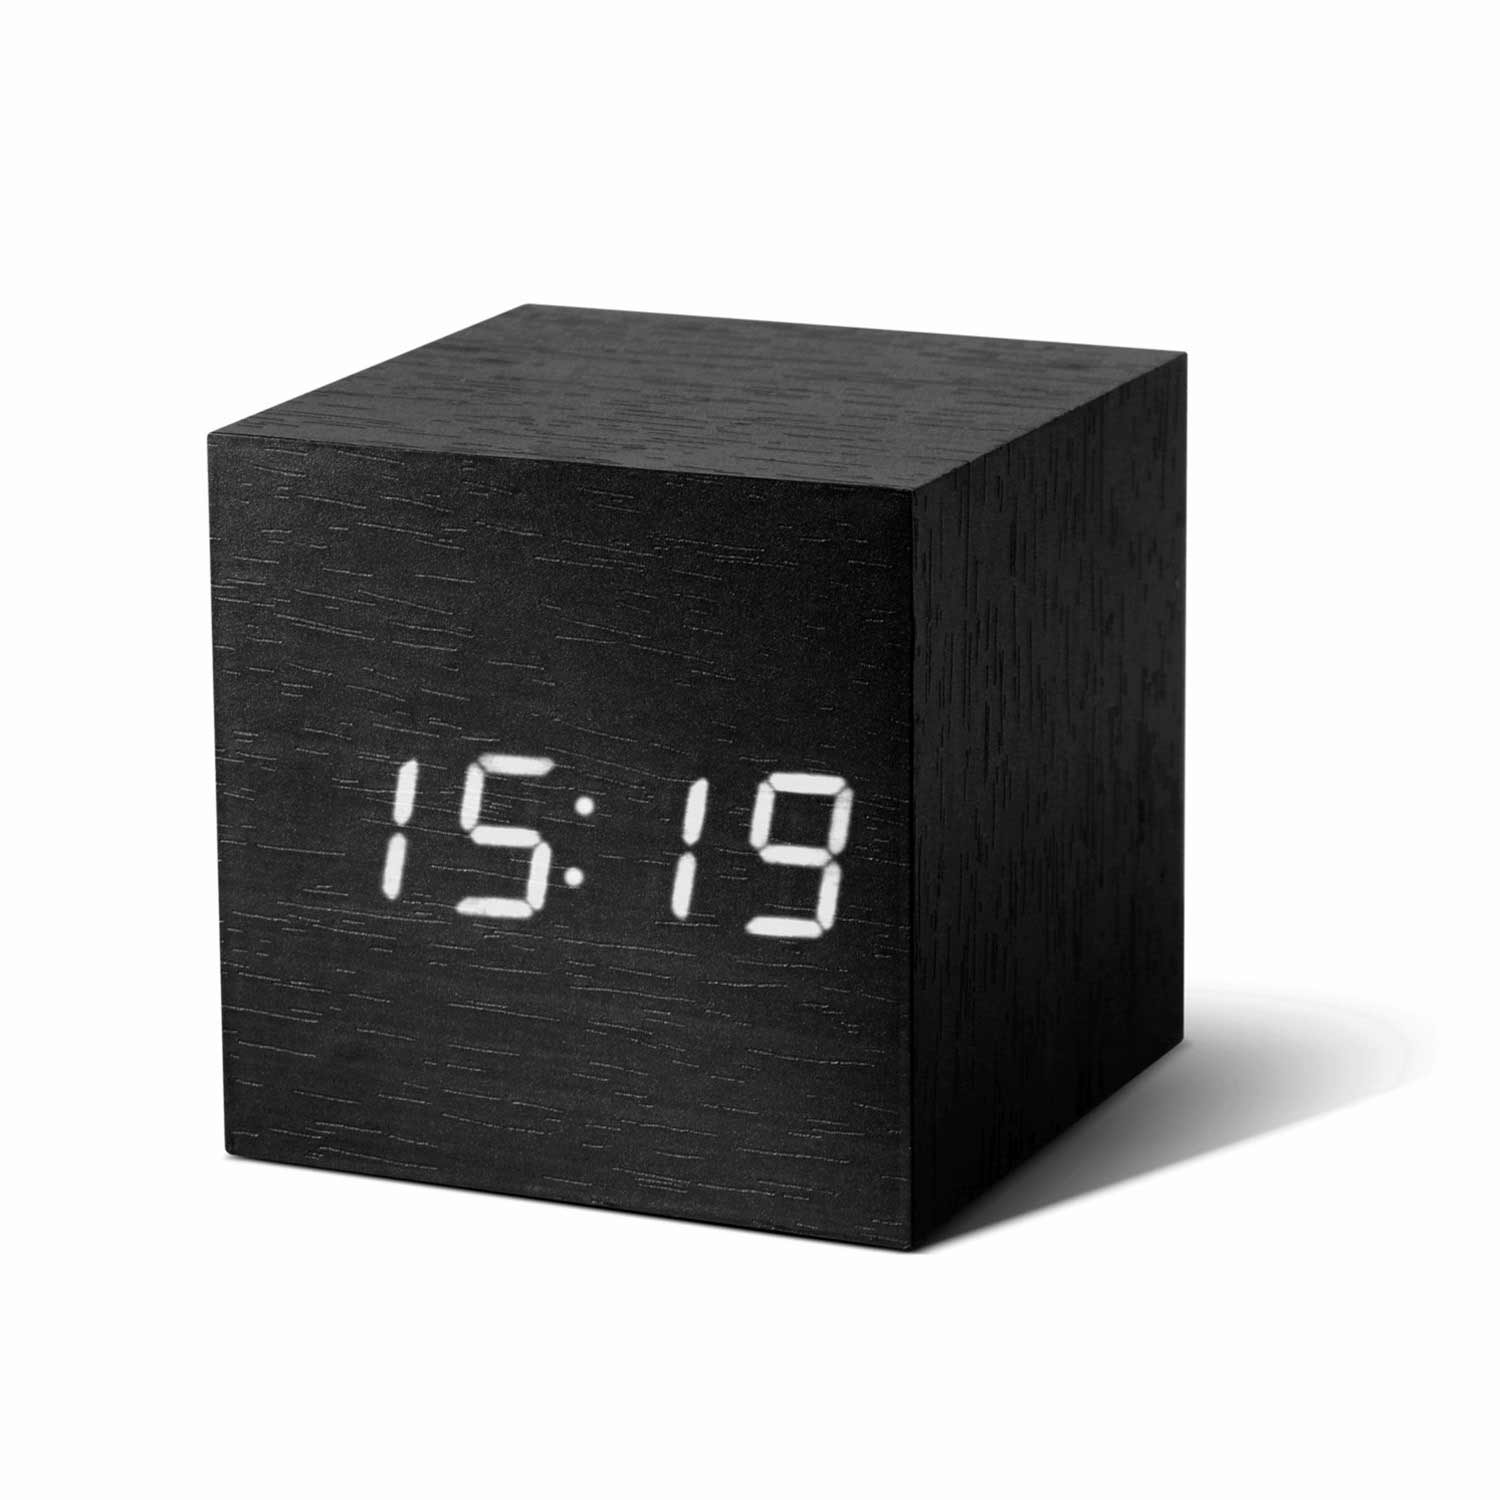 GINKGO cube click clock black / white LED | the design gift shop